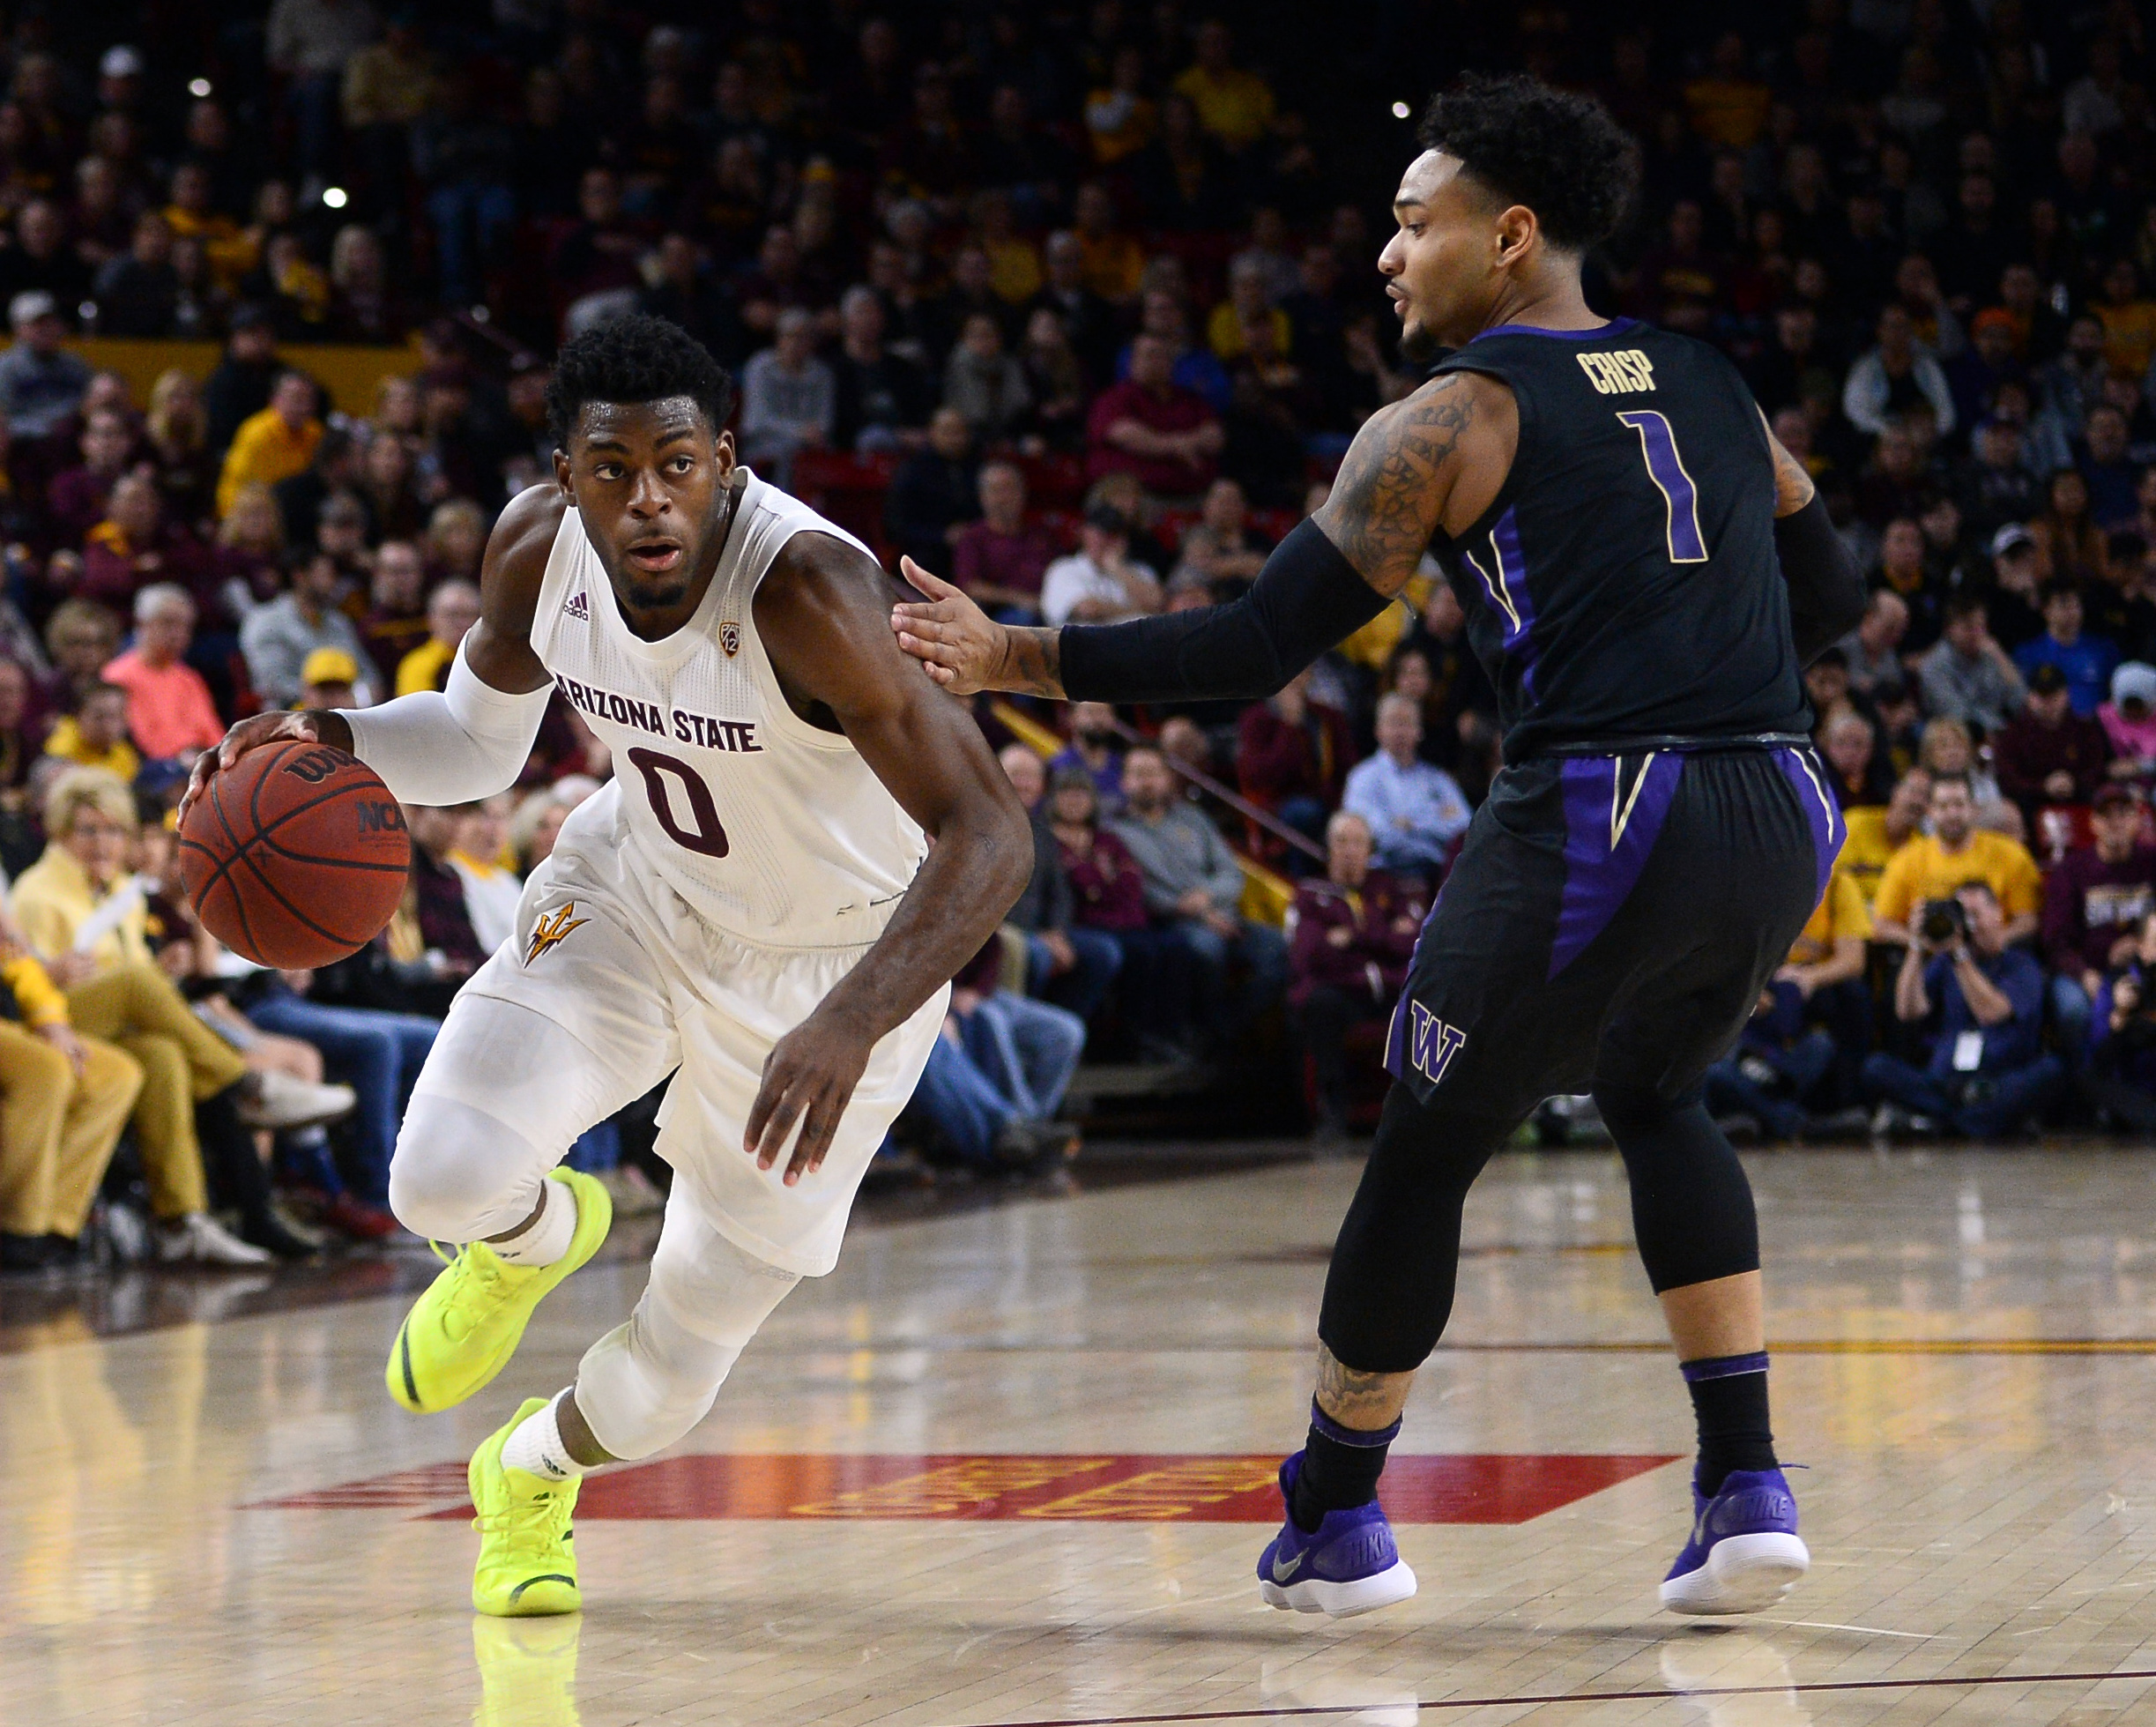 2019 NBA Draft: Why Luguentz Dort makes sense for the Sixers